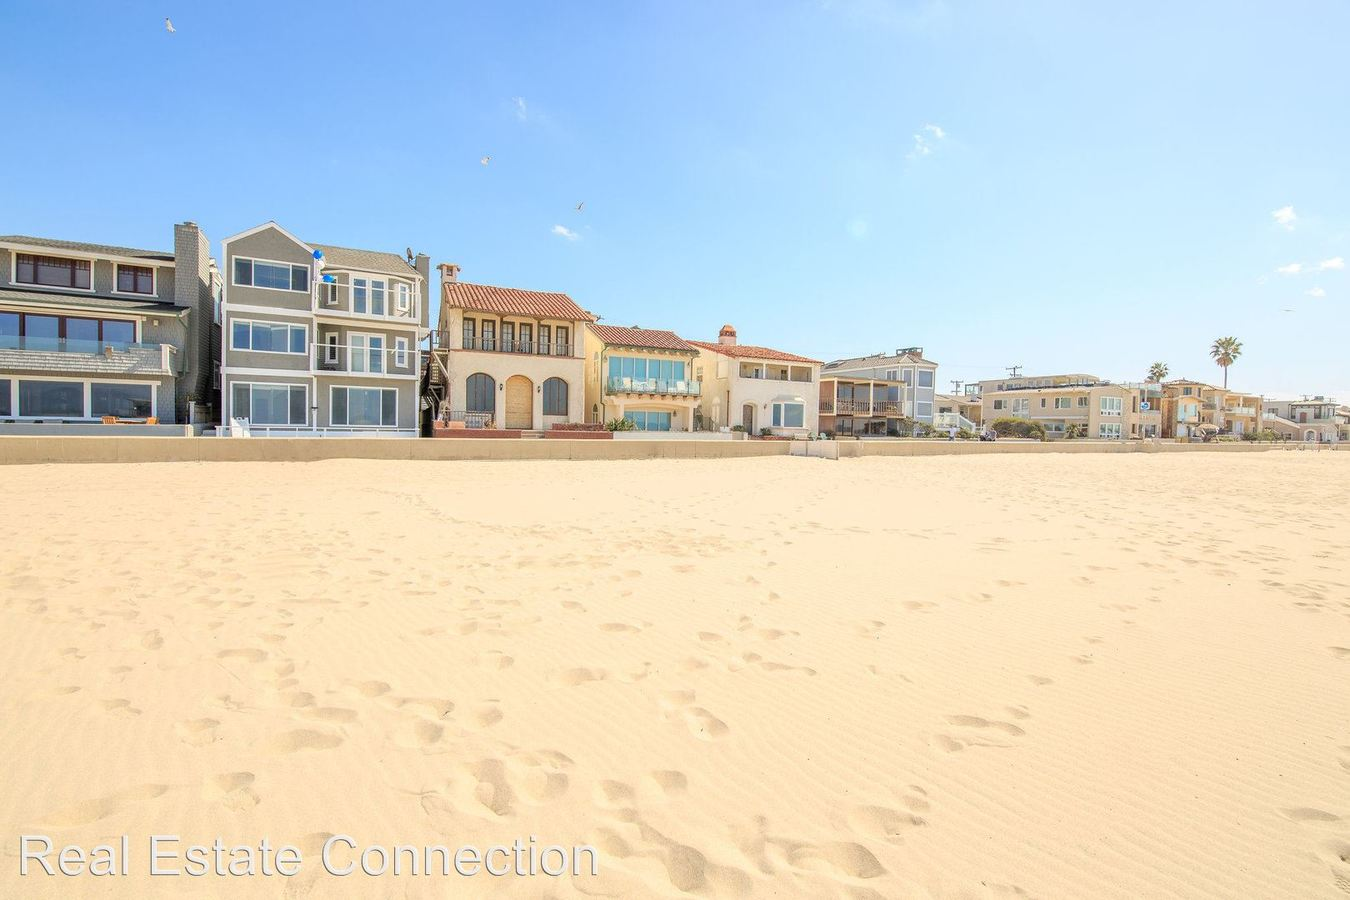 2 Bedrooms 1 Bathroom Apartment for rent at 1836 The Strand in Hermosa Beach, CA